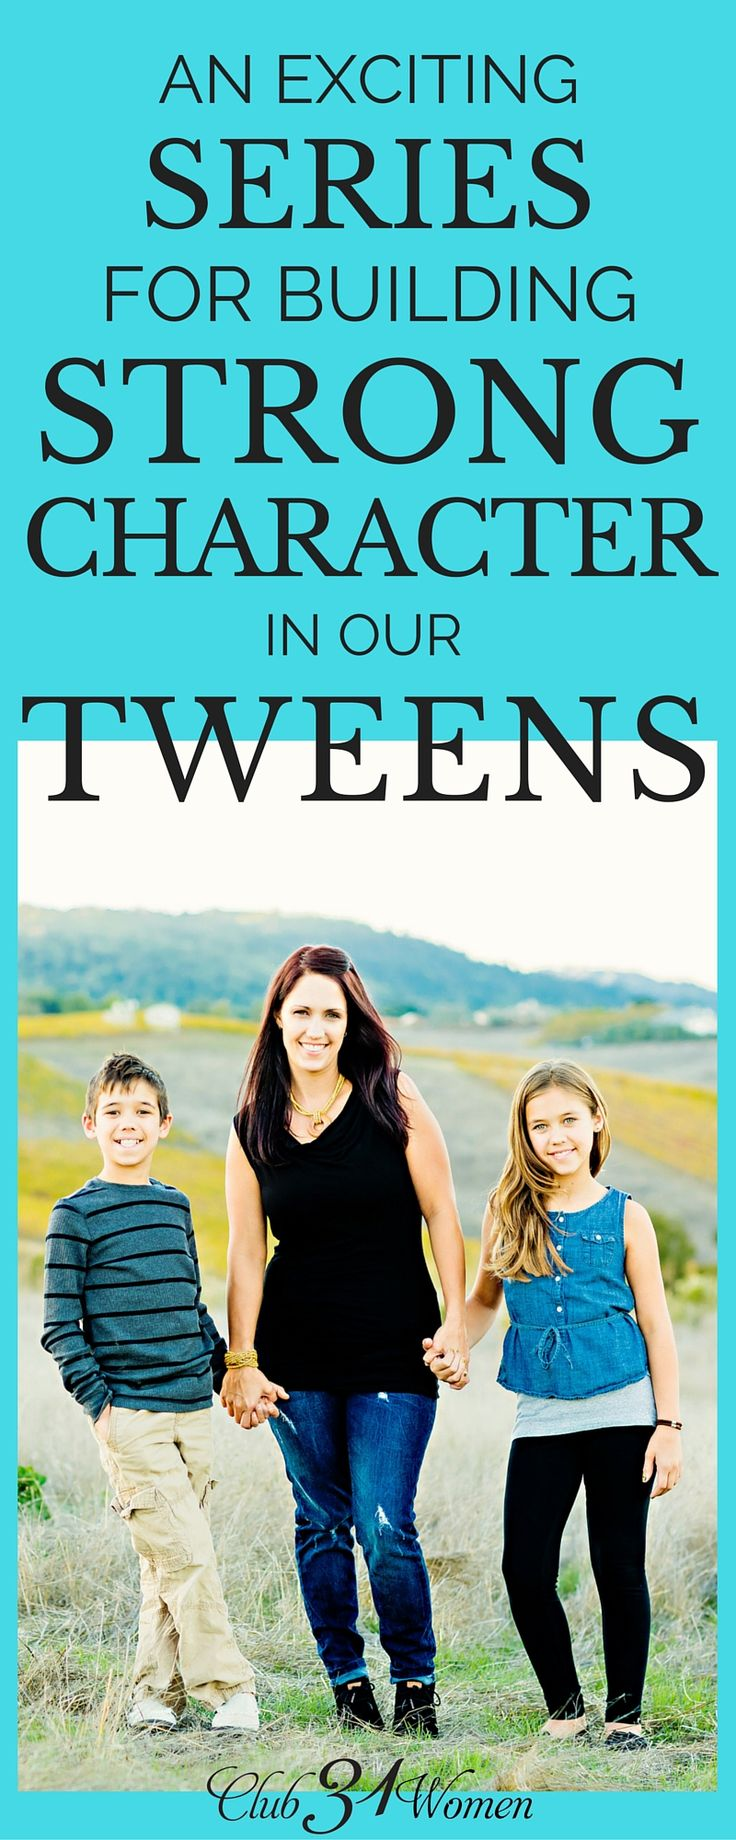 Looking for a character-building resource for your tweens? Here's one of my favorites for encouraging, inspiring, and entertaining those tween-age kids!